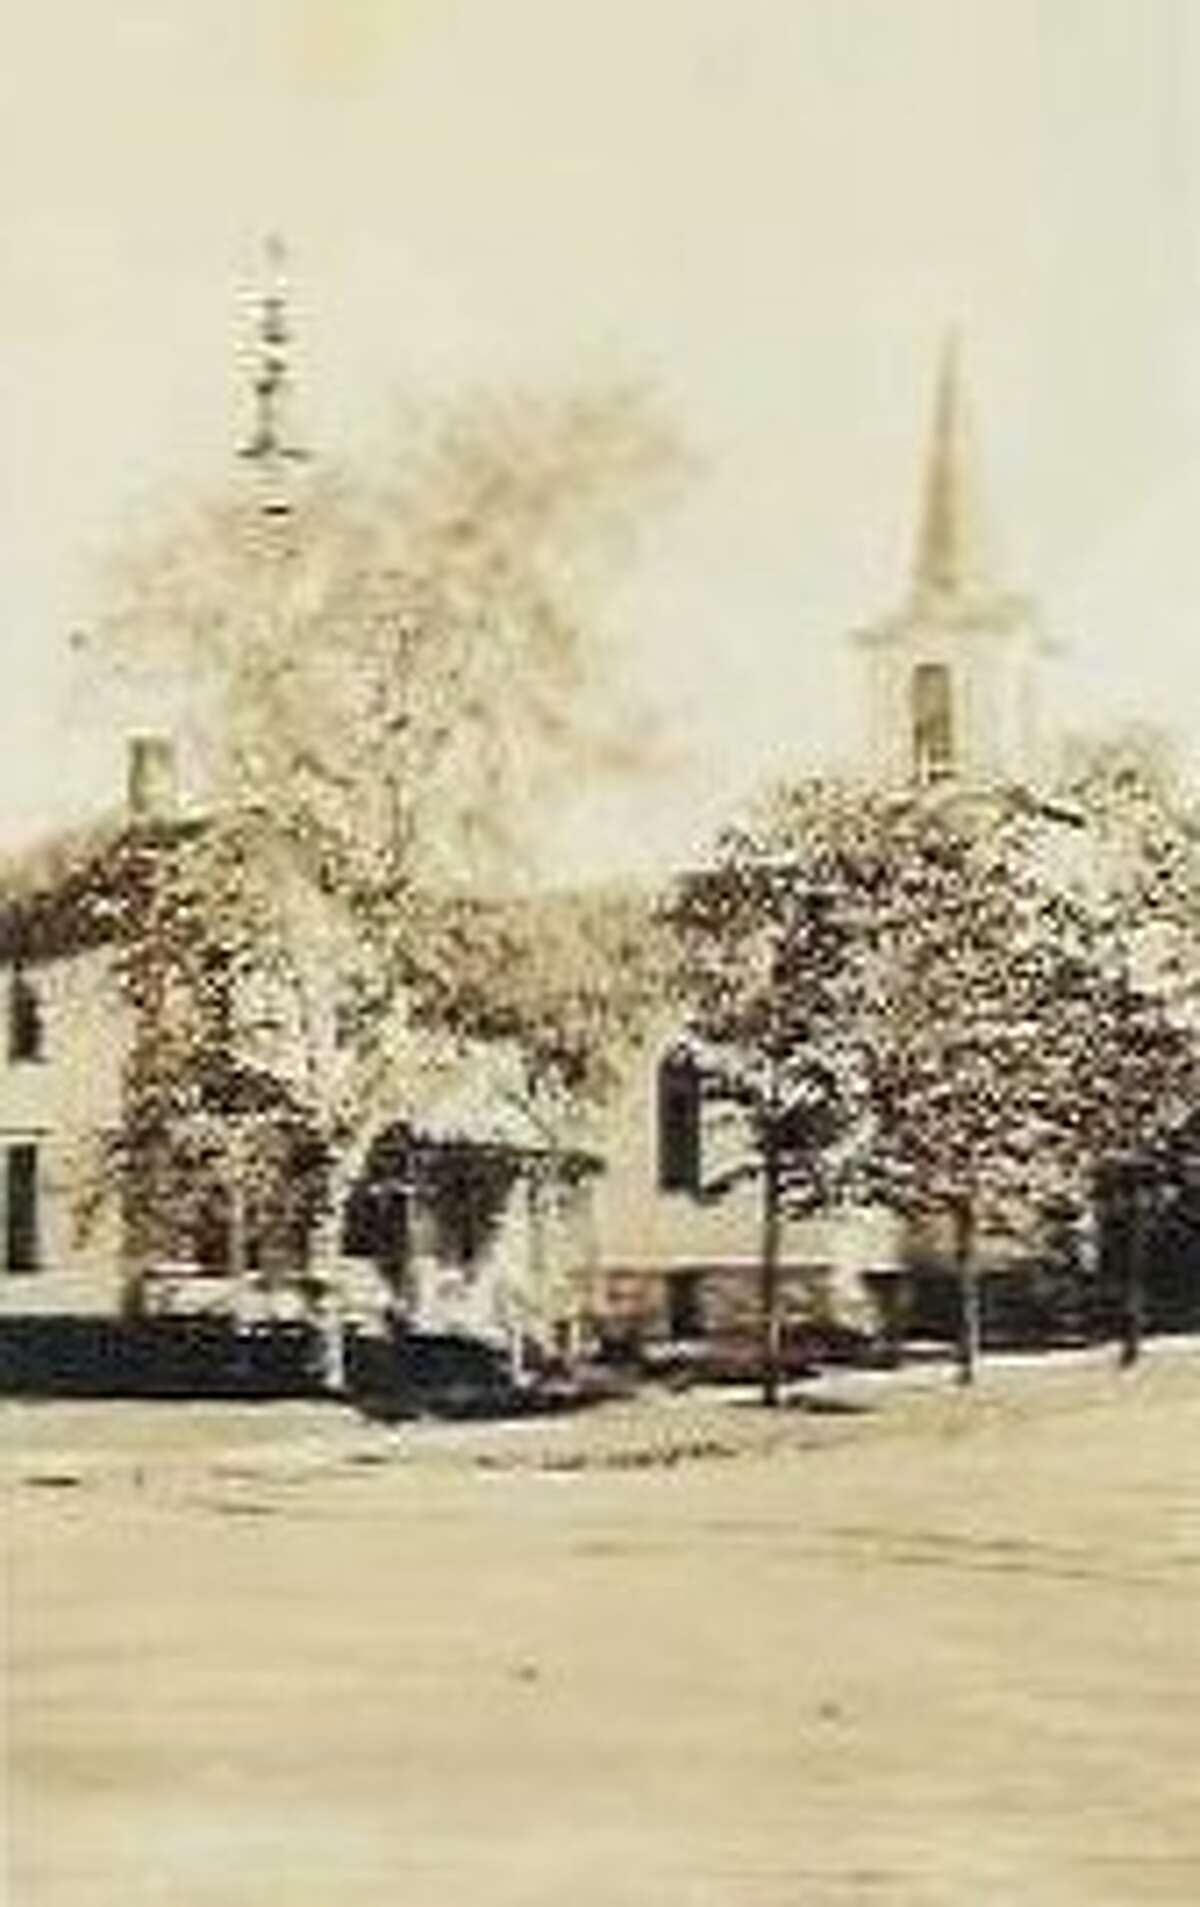 The Danish Lutheran Church in Manistee is now the Old Kirke Musuem. It is the oldest Danish Lutheran Church in America still with its doors open to the public.